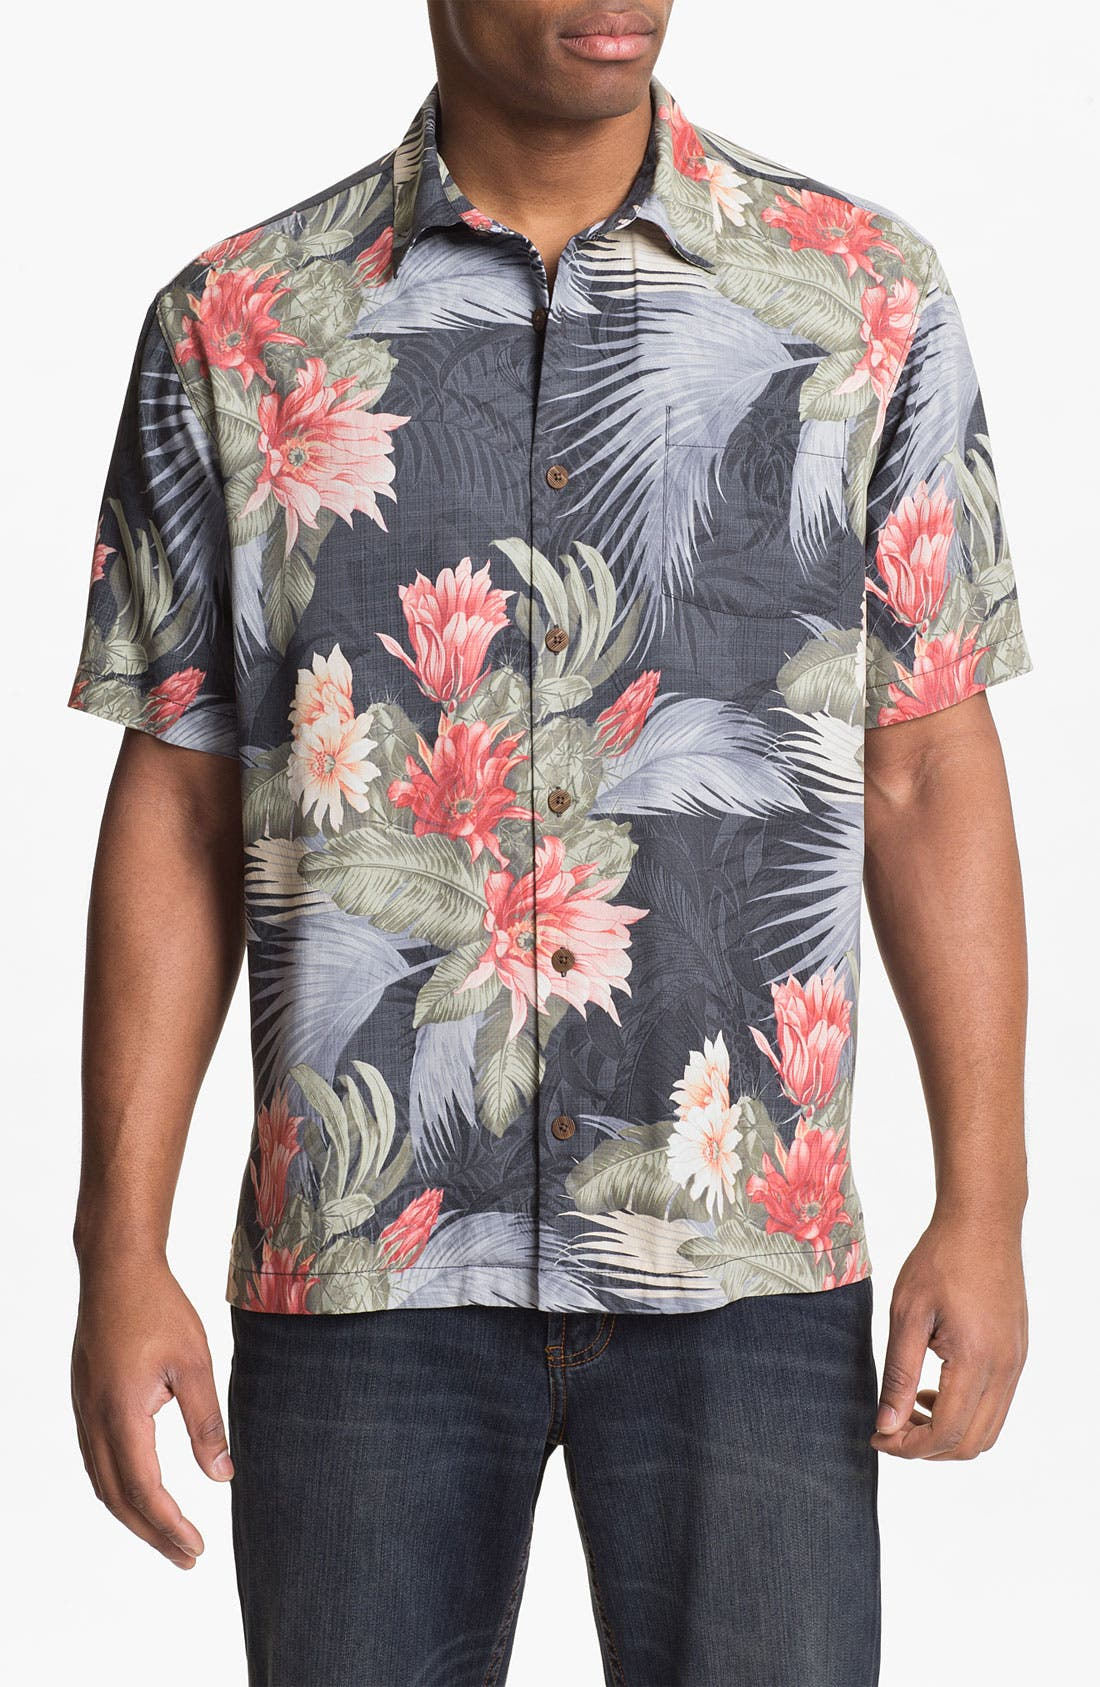 Alternate Image 1 Selected - Tommy Bahama 'Garden of Hope & Courage' Silk Campshirt